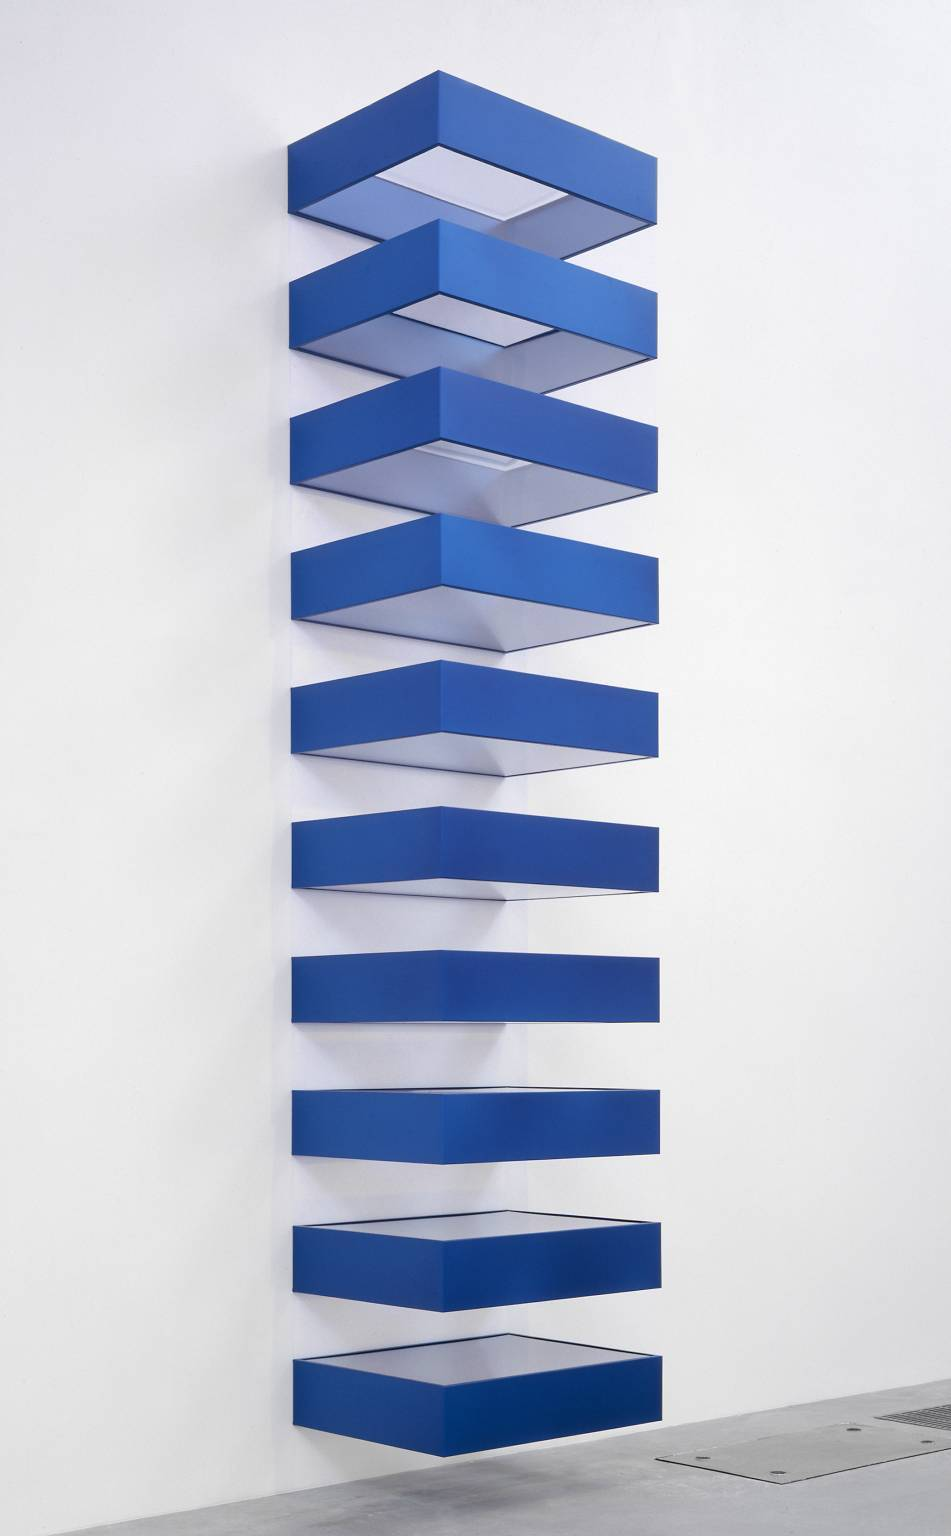 Donald Judd - Untitled, 1990. Anodised aluminium, steel and acrylic